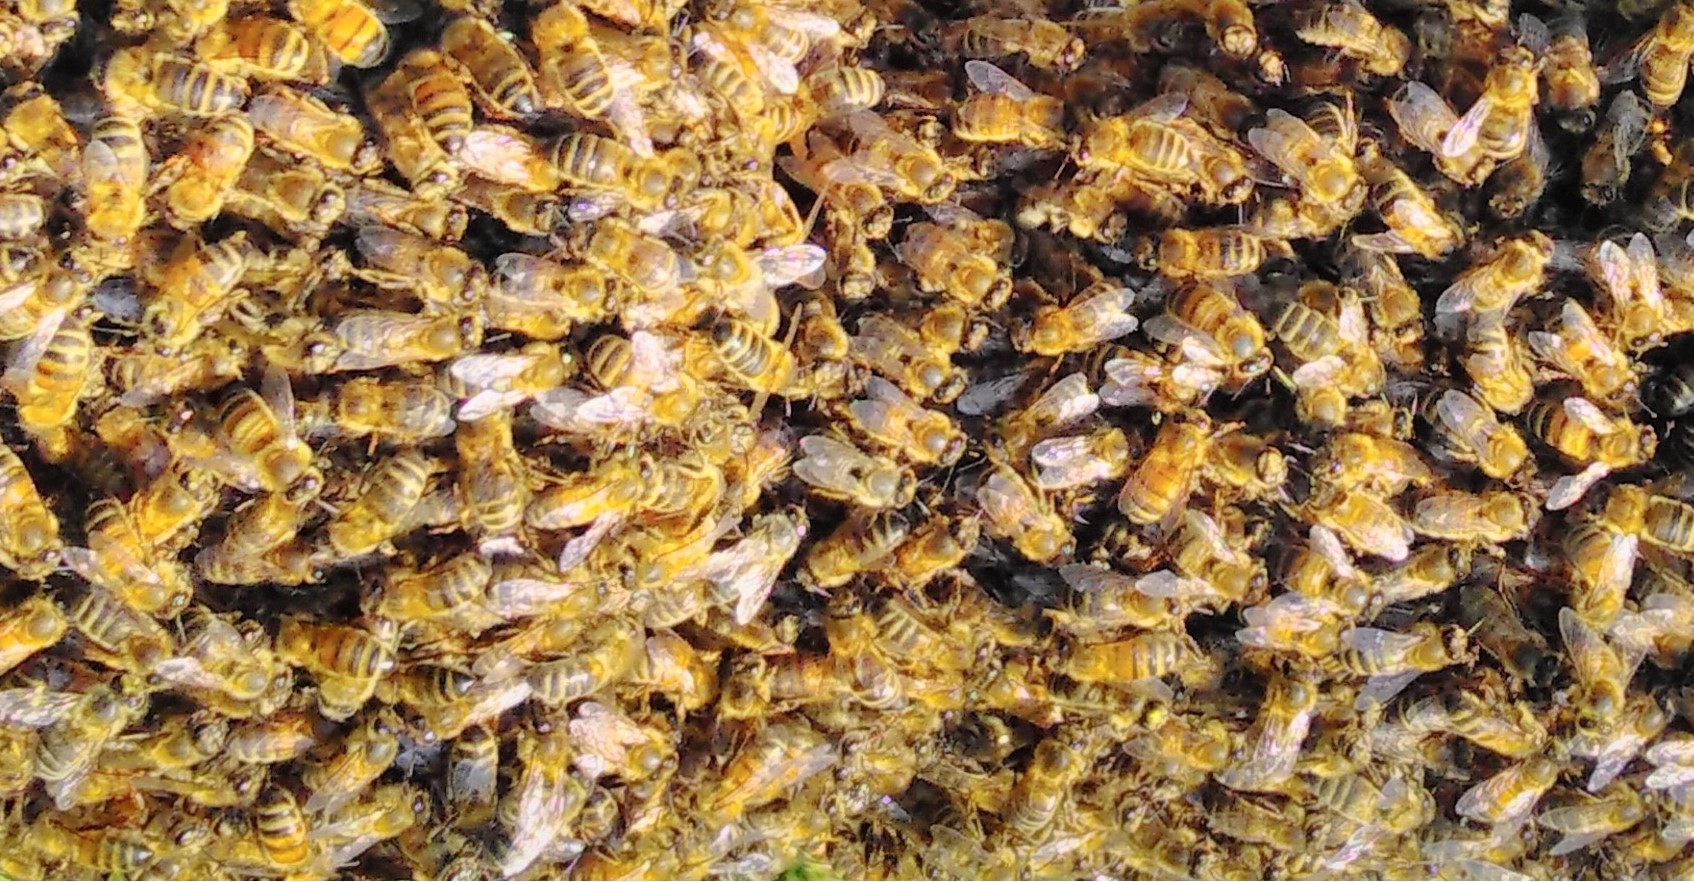 <h2>Bees</h2><div class='slide-content'><p><span class='highlight'>You can keep bees in our apiary, subject to training and safeguards</span></p></div><a href='/beekeepers/' class='btn' title='Read more'>Read more</a>